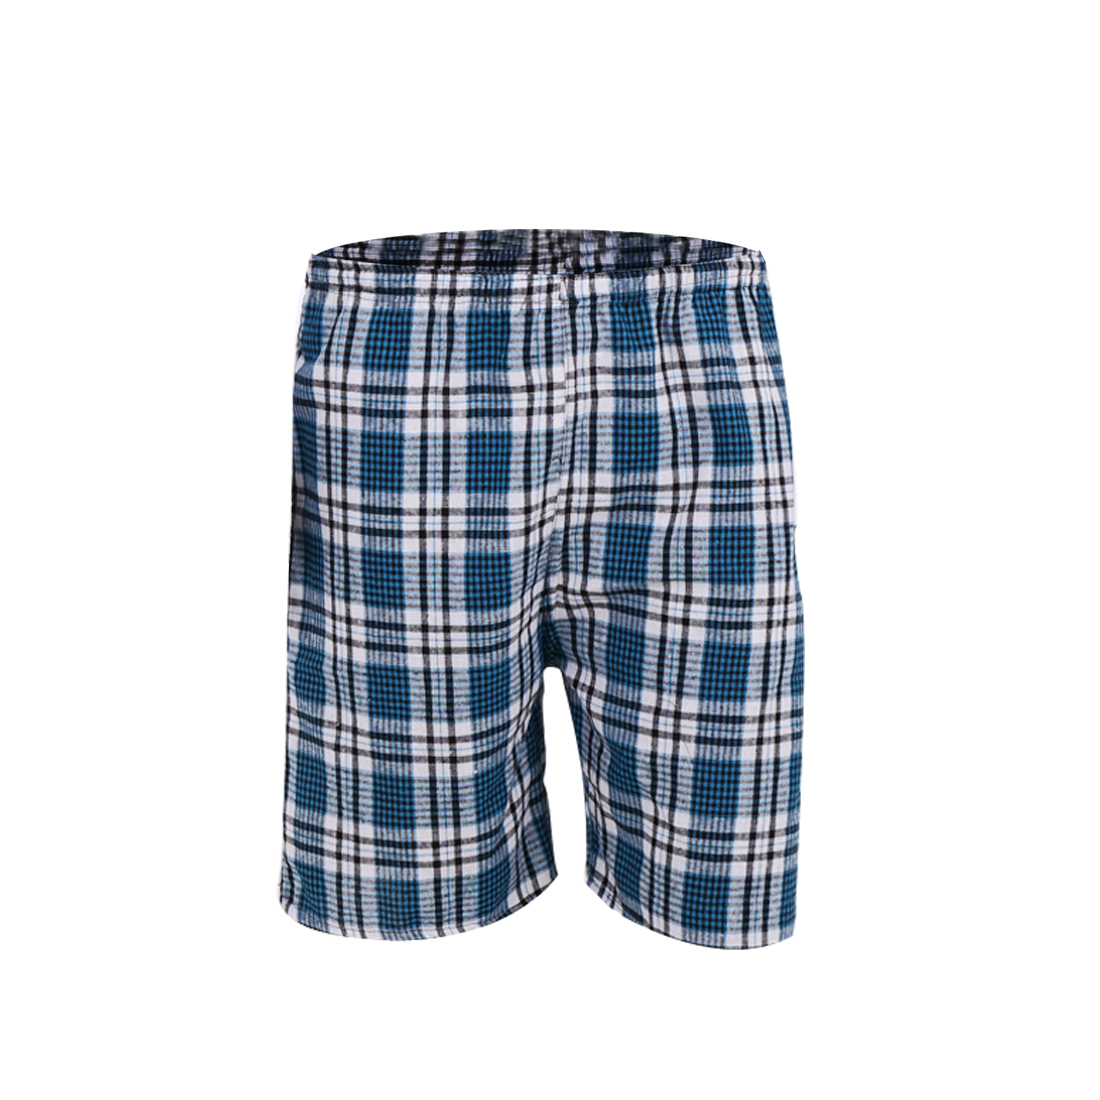 W29 Blue Plaids Print Color Block Elastic Waist Slant Pockets Shorts for Men